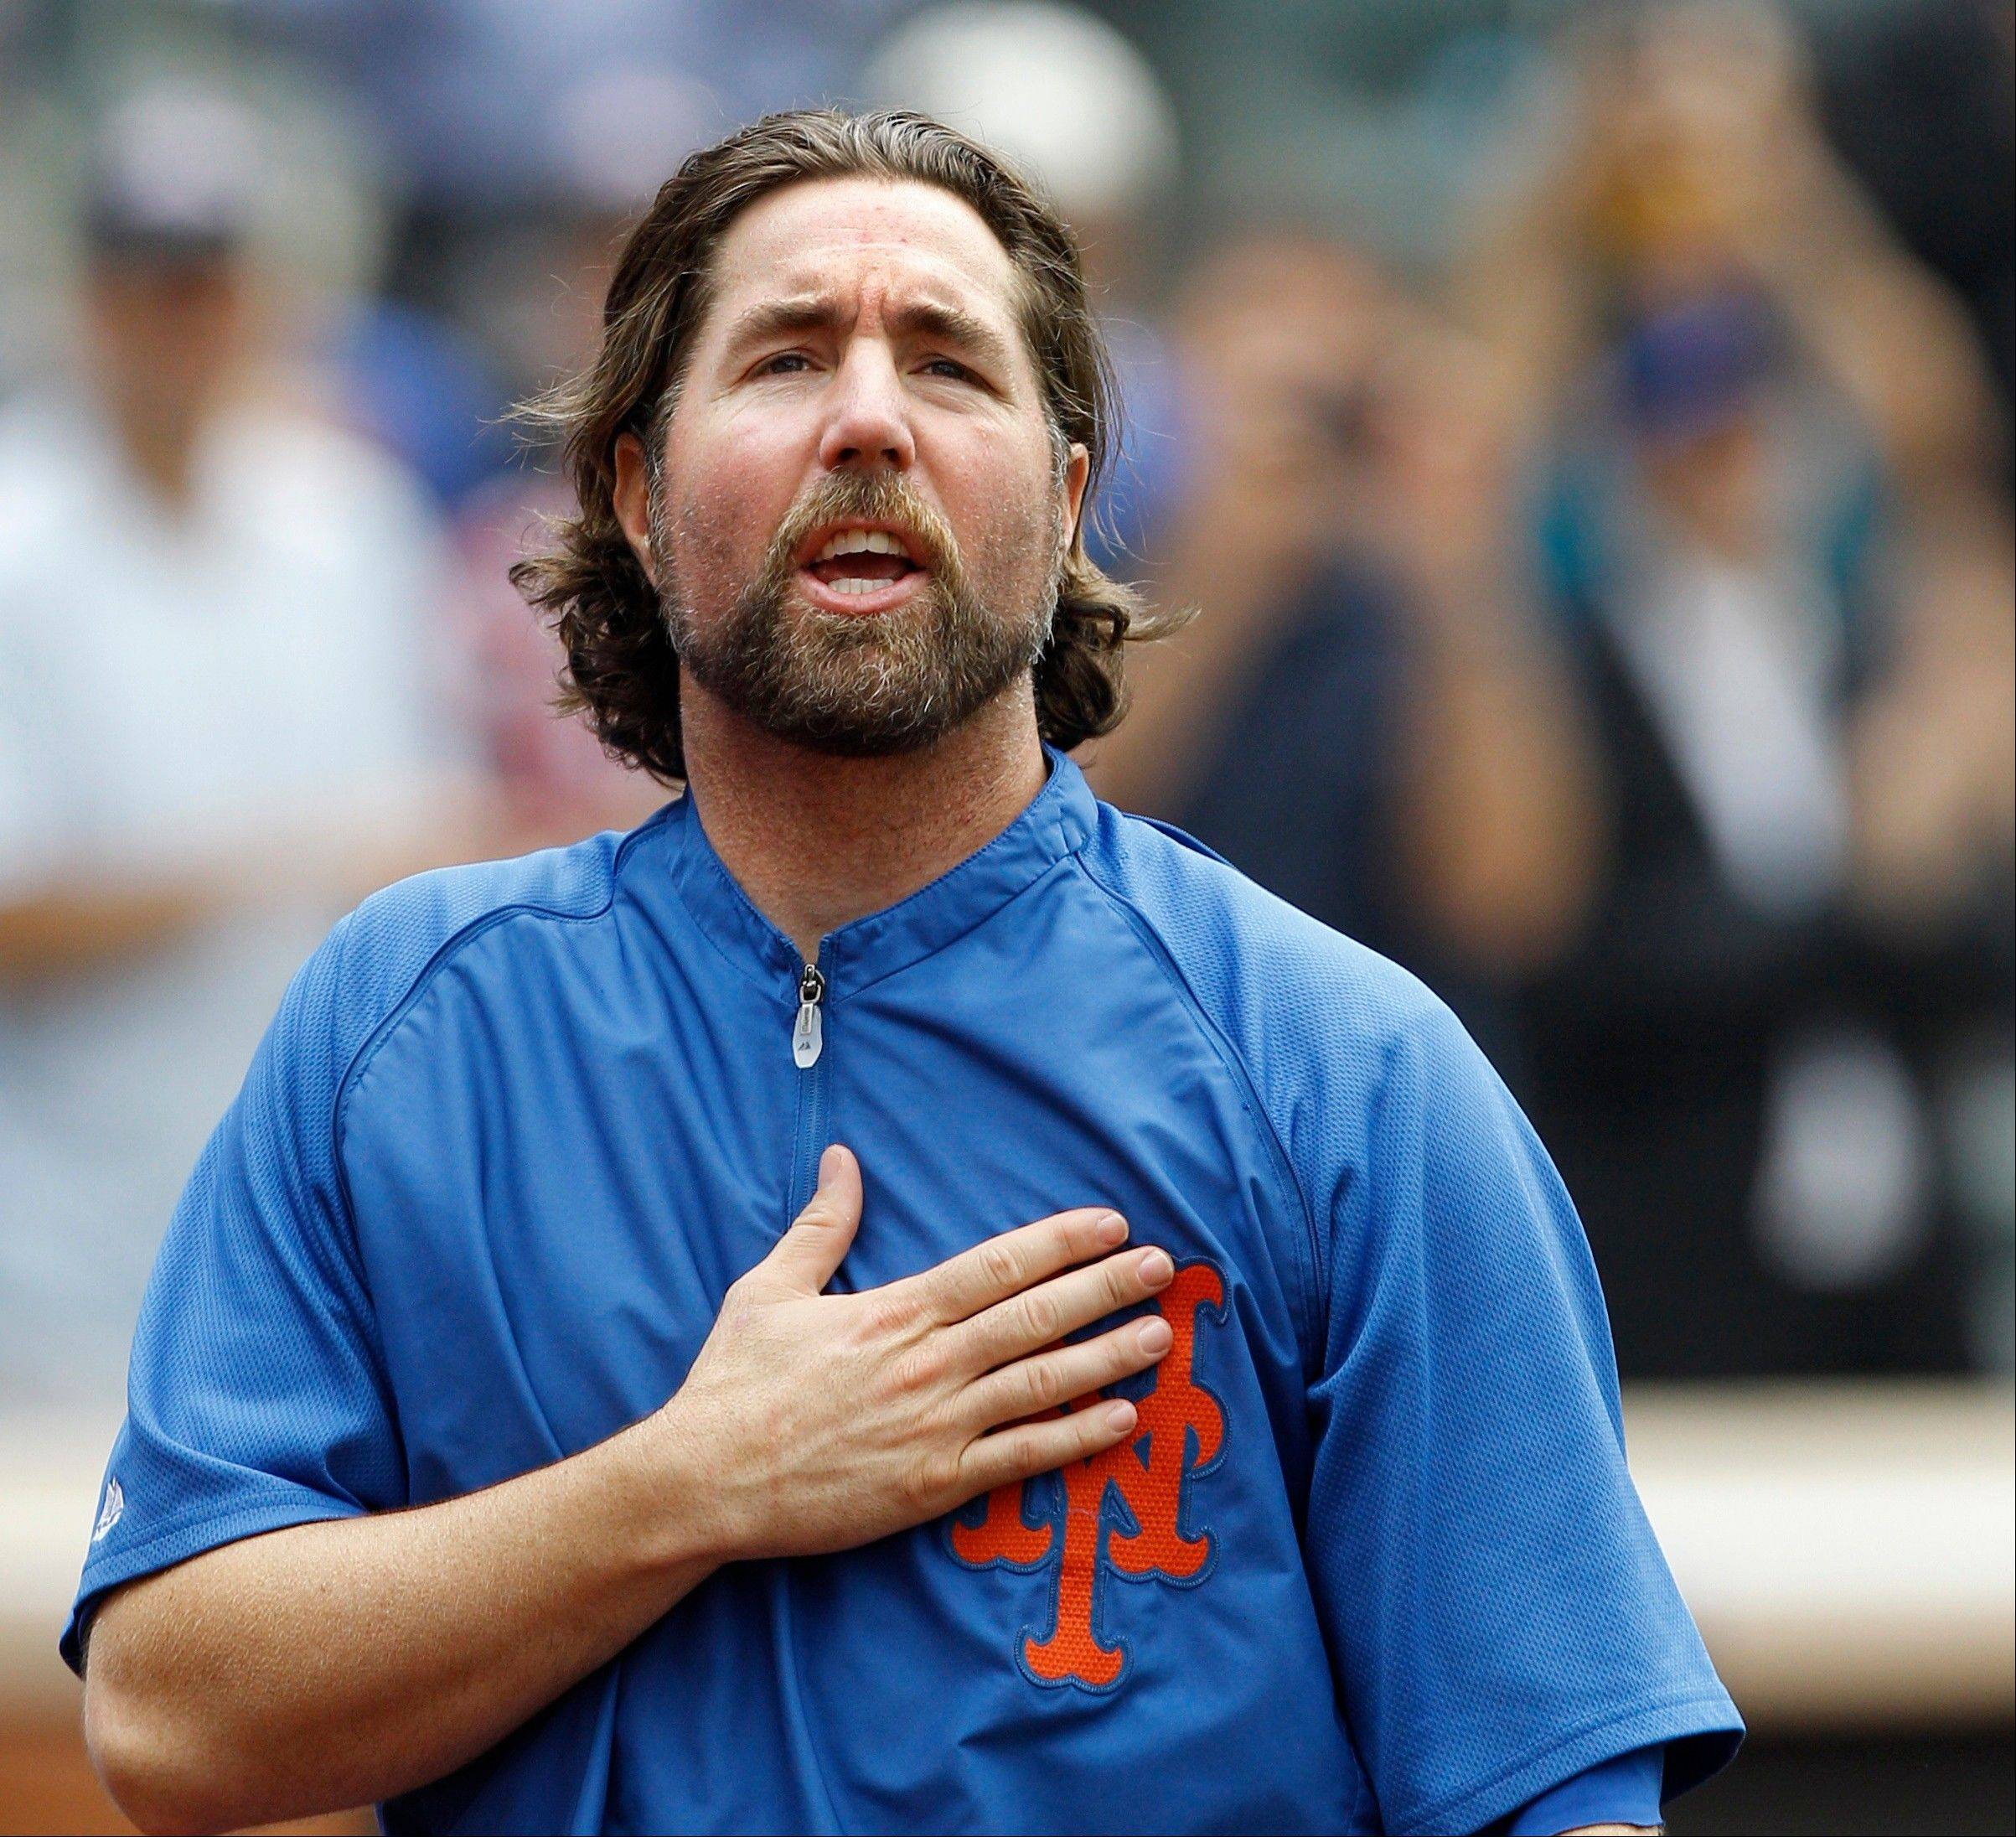 This Sept. 27, 2012 file photo shows New York Mets starting pitcher R.A. Dickey reacting to fans as he celebrates his 20th victory of the season after the Mets 6-5 win against the Pittsburgh Pirates in a baseball game at Citi Field in New York. A person familiar with the deal tells The Associated Press that Dickey and the Blue Jays have agreed on a new contract, clearing the way for the New York Mets to trade the Cy Young winner to Toronto. The 38-year-old knuckleballer must pass a physical before he joins the Blue Jays. The Mets would get prized catching prospect Travis d'Arnaud as the centerpiece of the multiplayer swap.